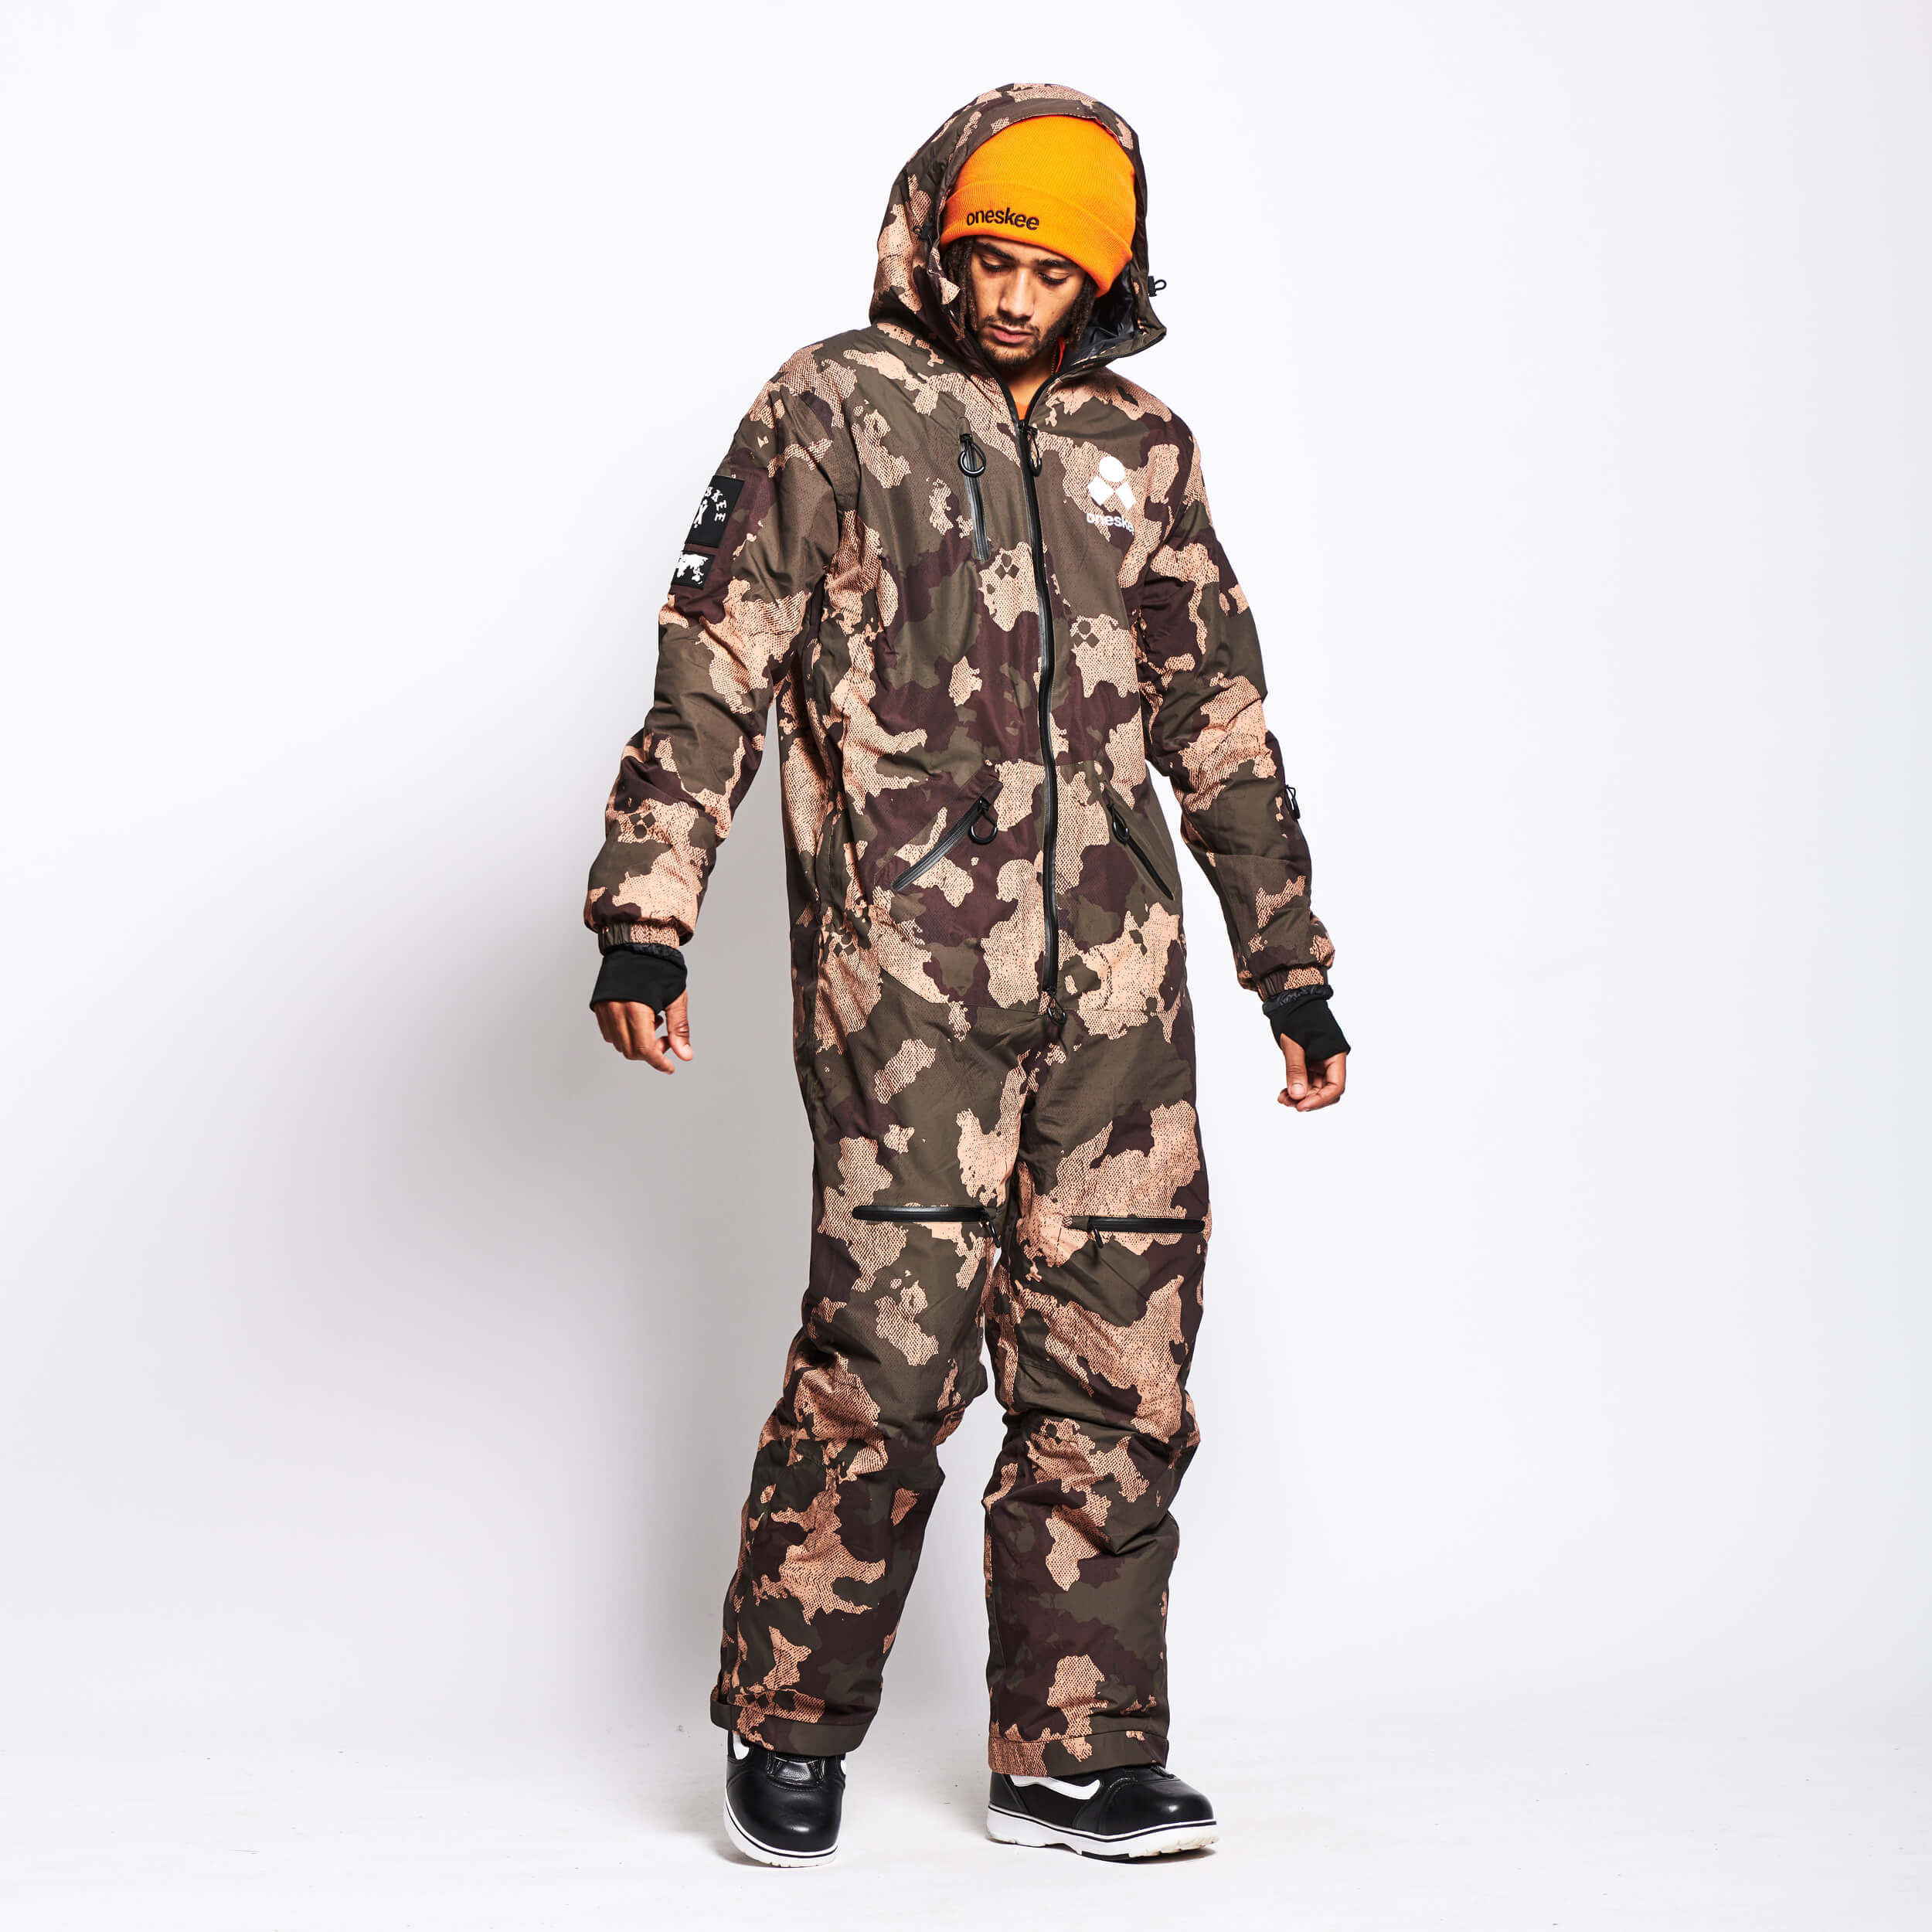 Men's Original Pro Suit - Camo image 4